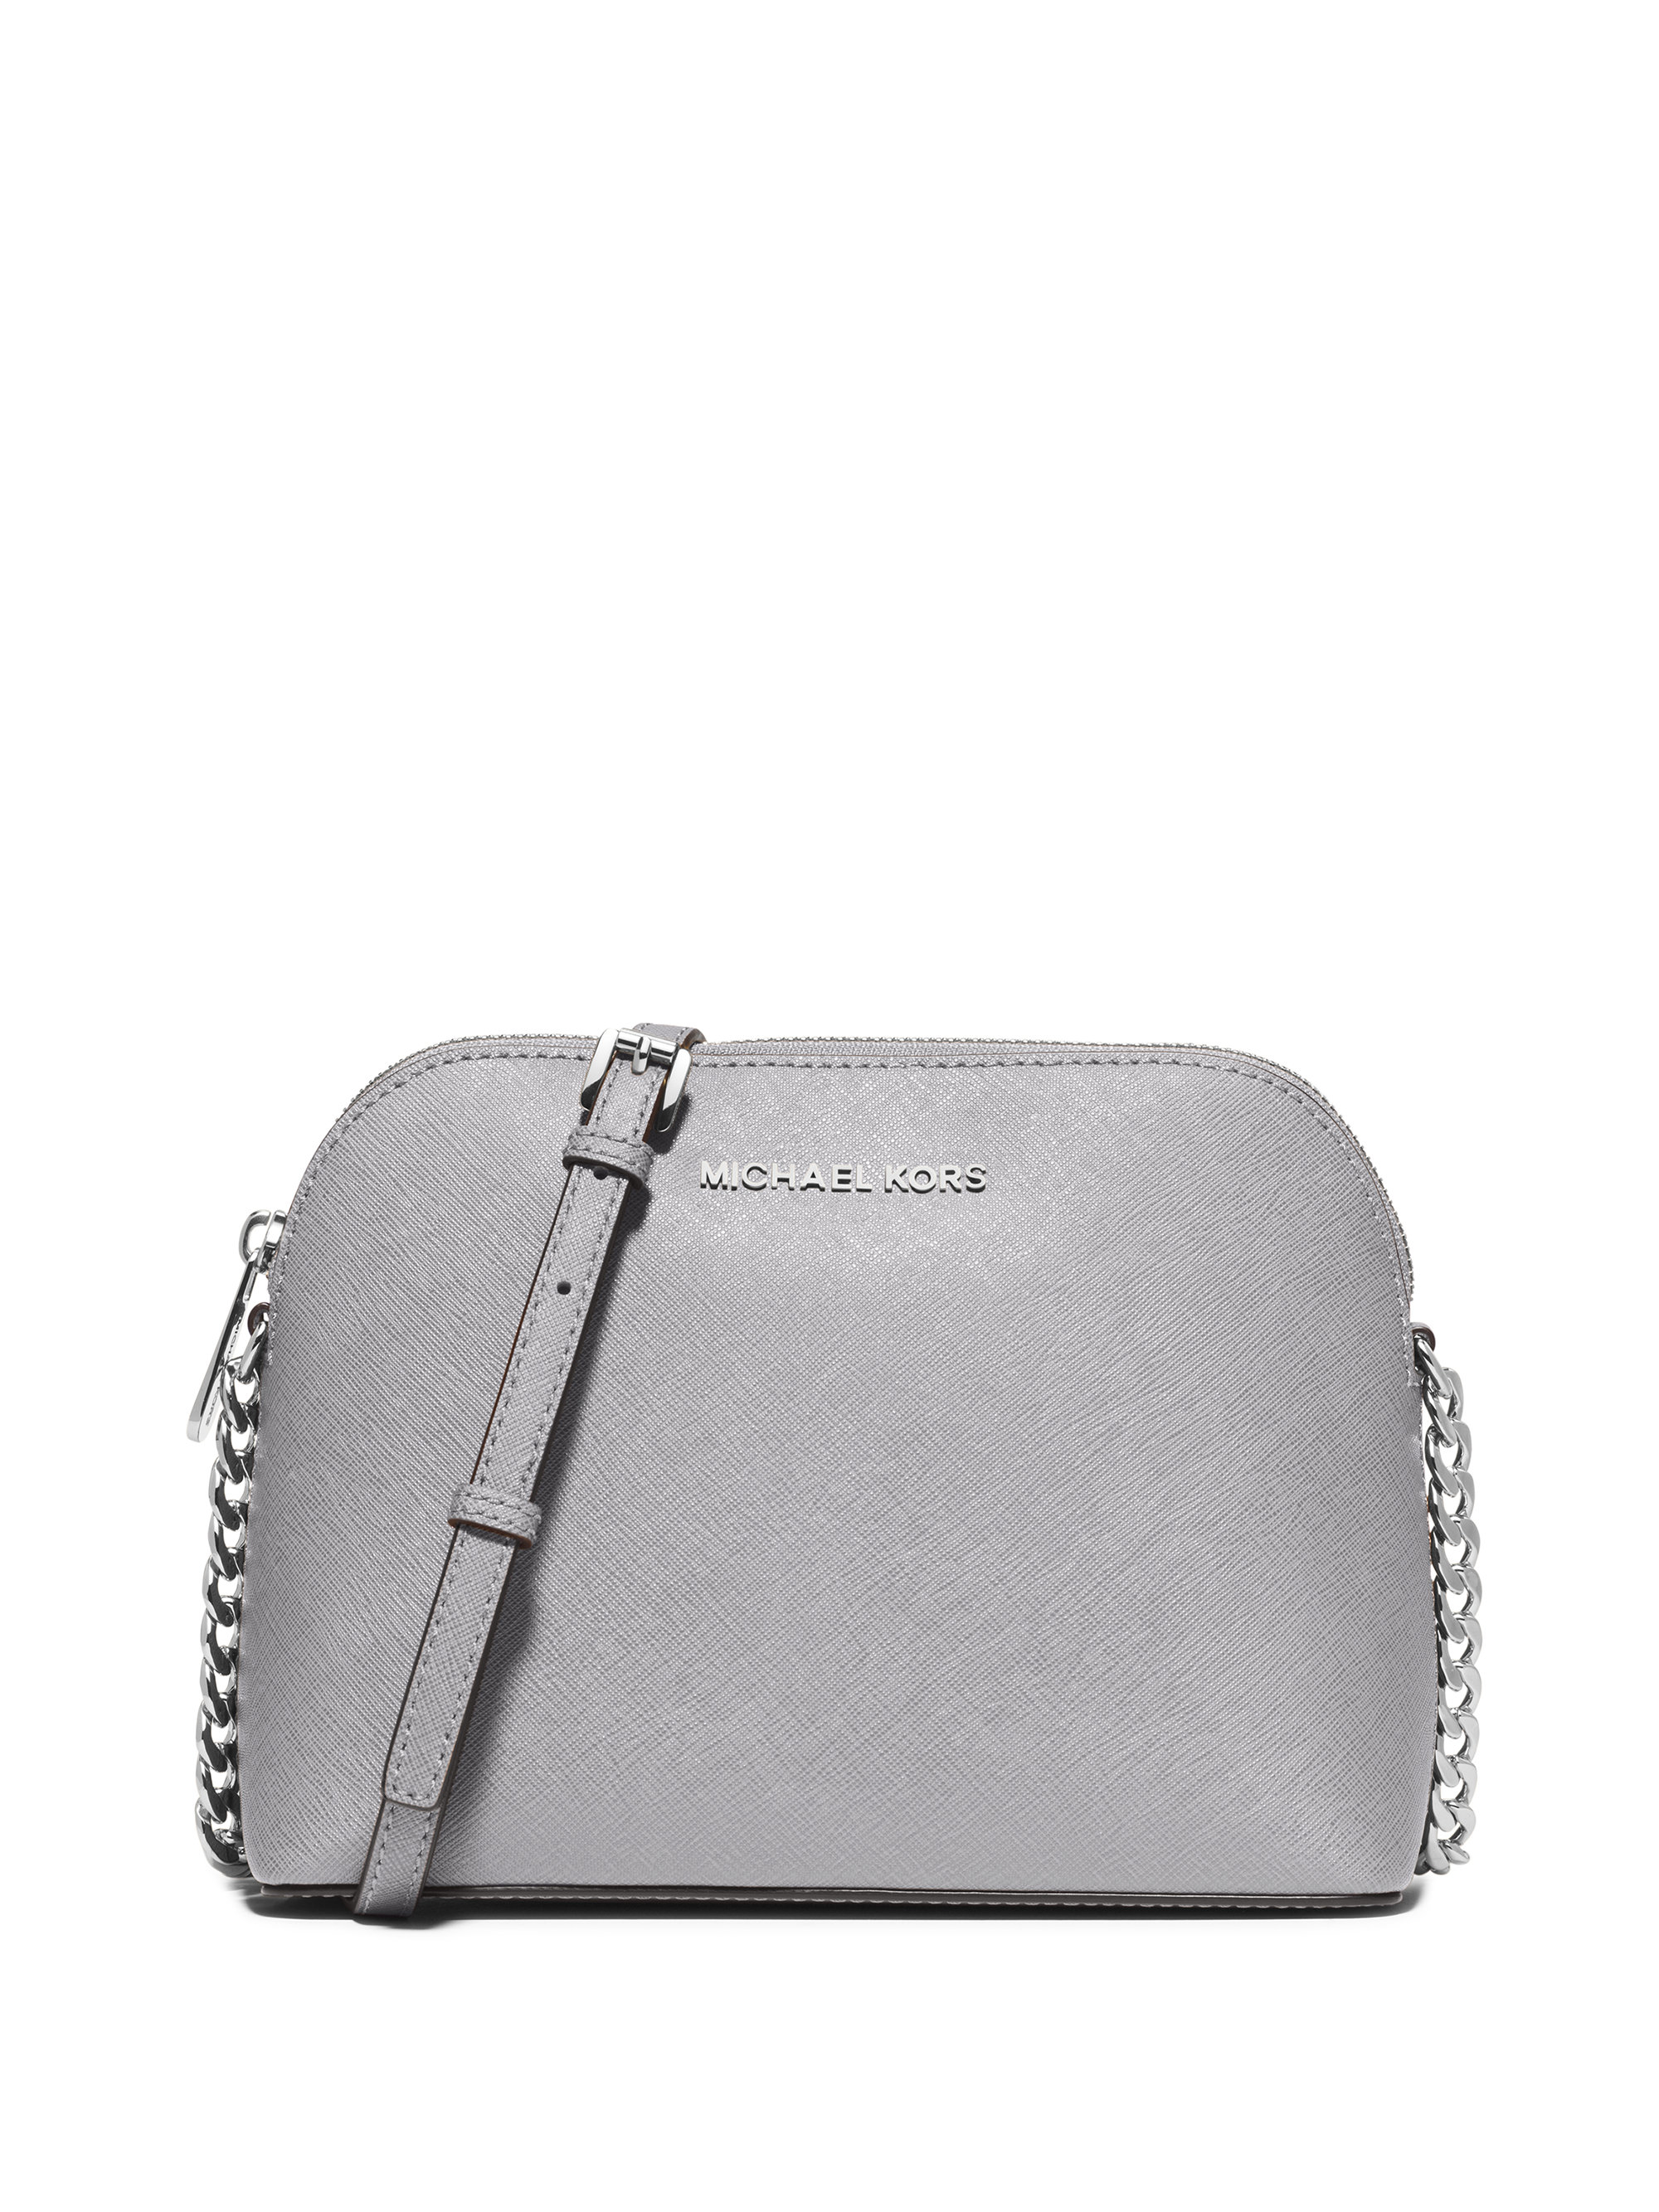 363df7f17c03ba Gallery. Previously sold at: Saks Fifth Avenue · Women's Michael Kors Cindy